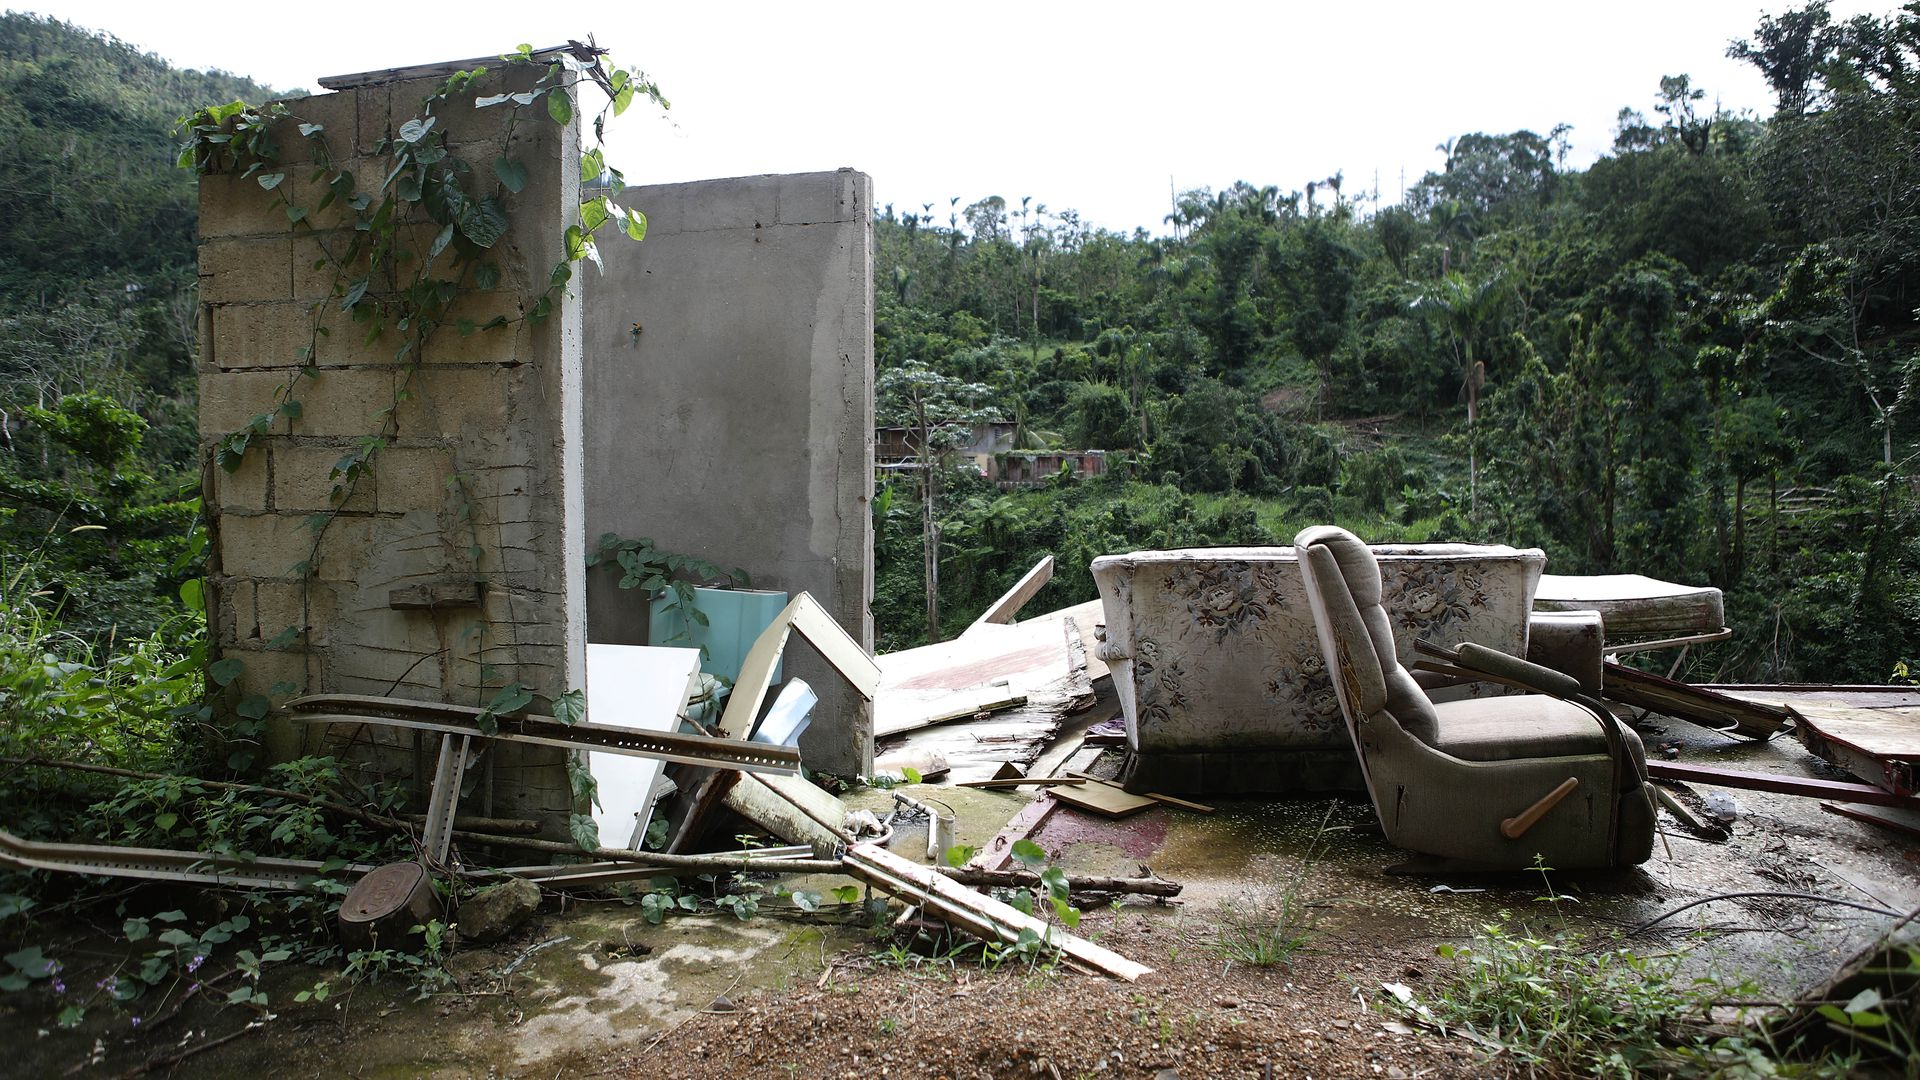 Forlorn couch sits amongst a ruined house